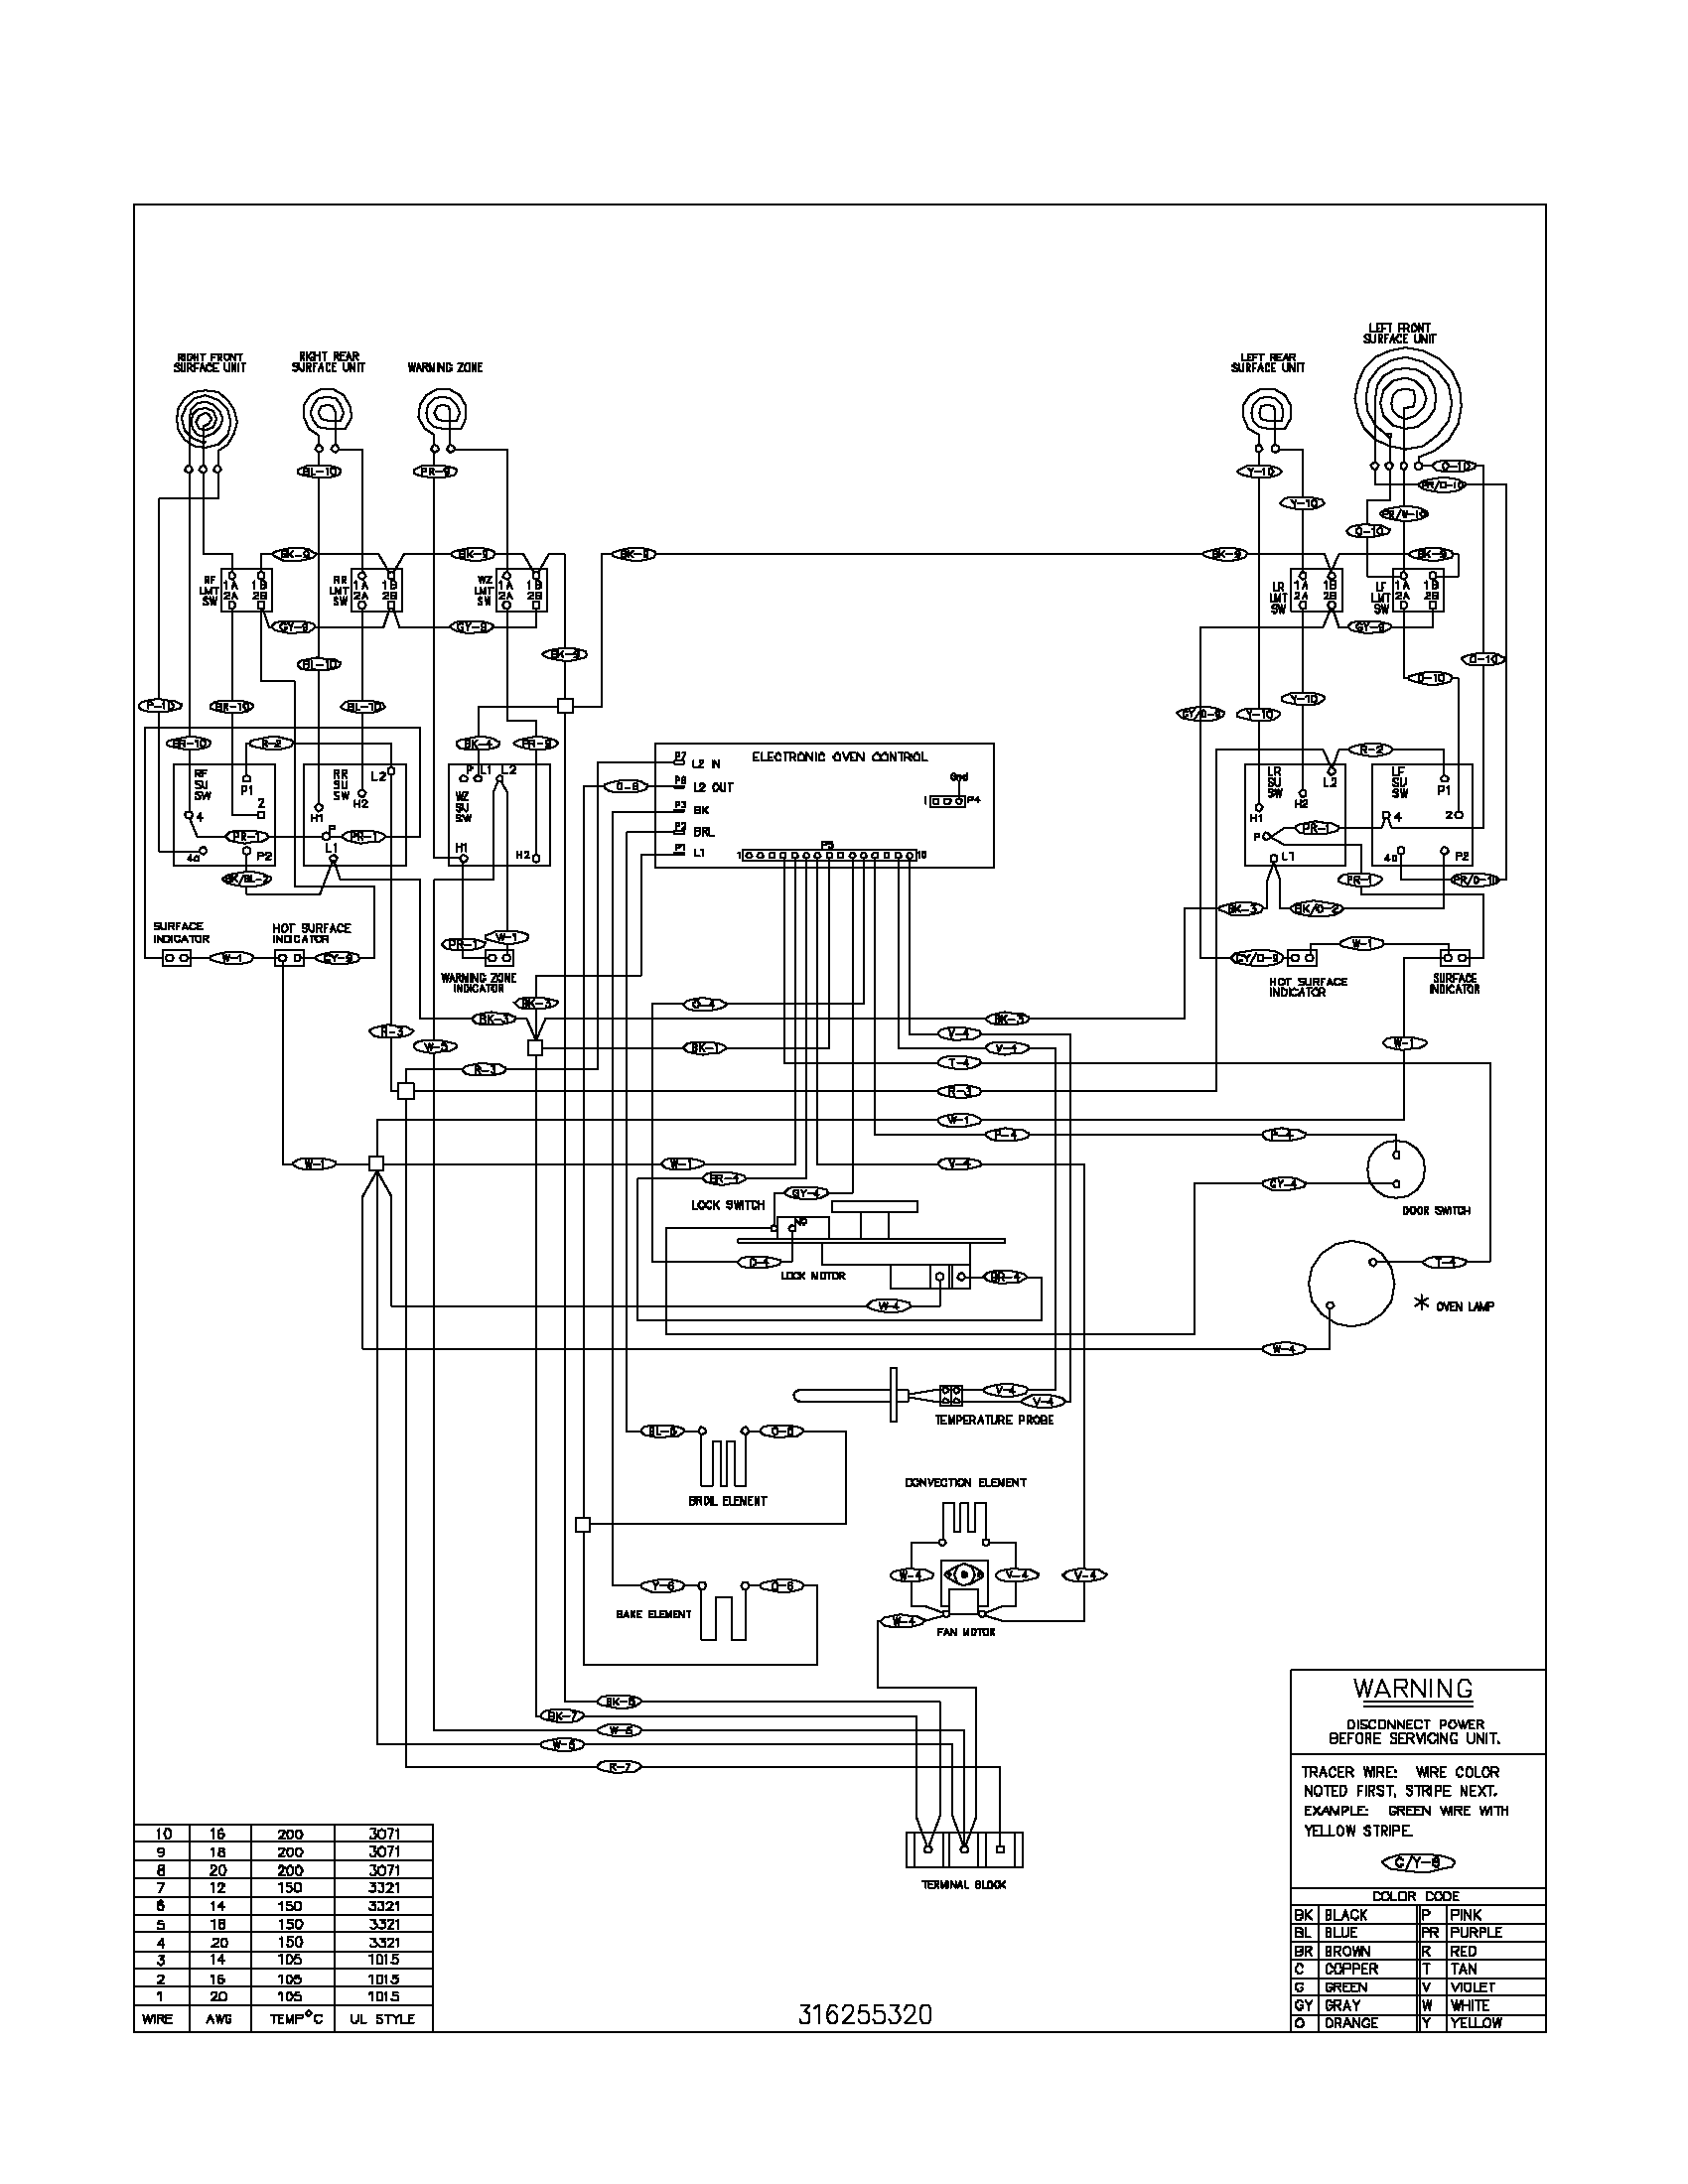 for diagram range wiring whirlpool gs445lems4 heater dayton for diagram a wiring gas 3e266 whirlpool fefl88acc electric range timer - stove clocks ... #15